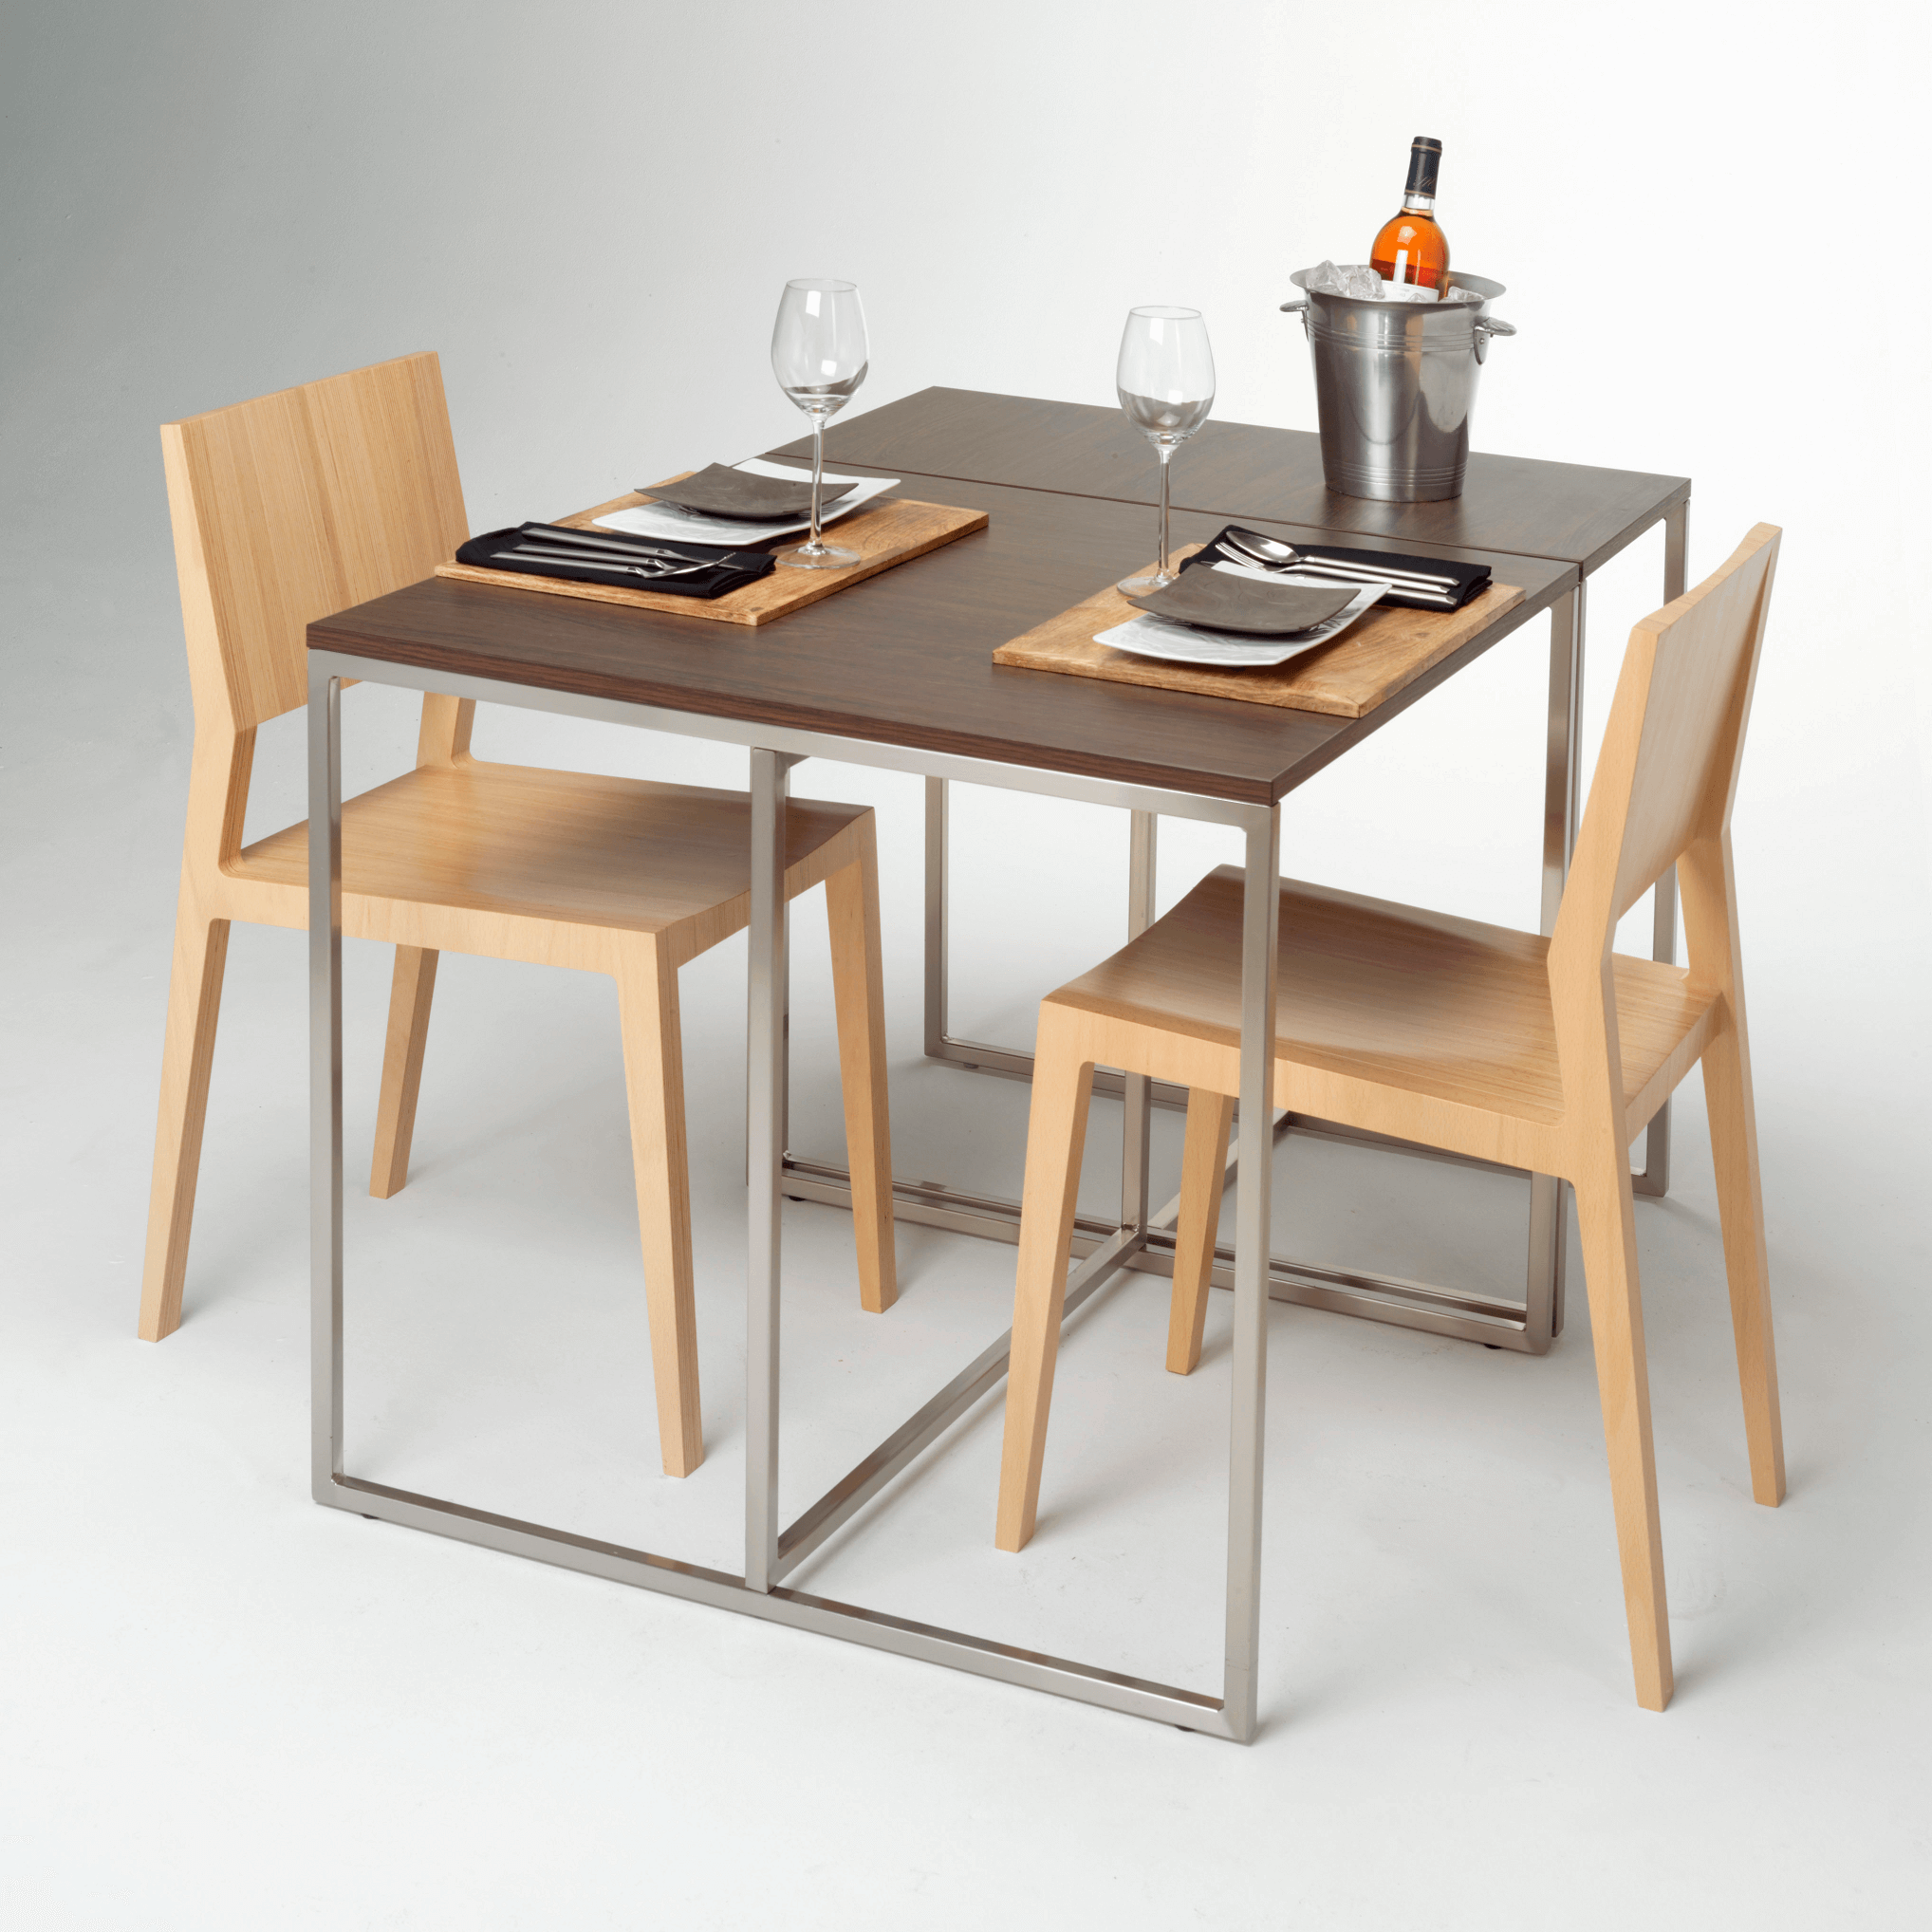 Make your simple dining table and chairs